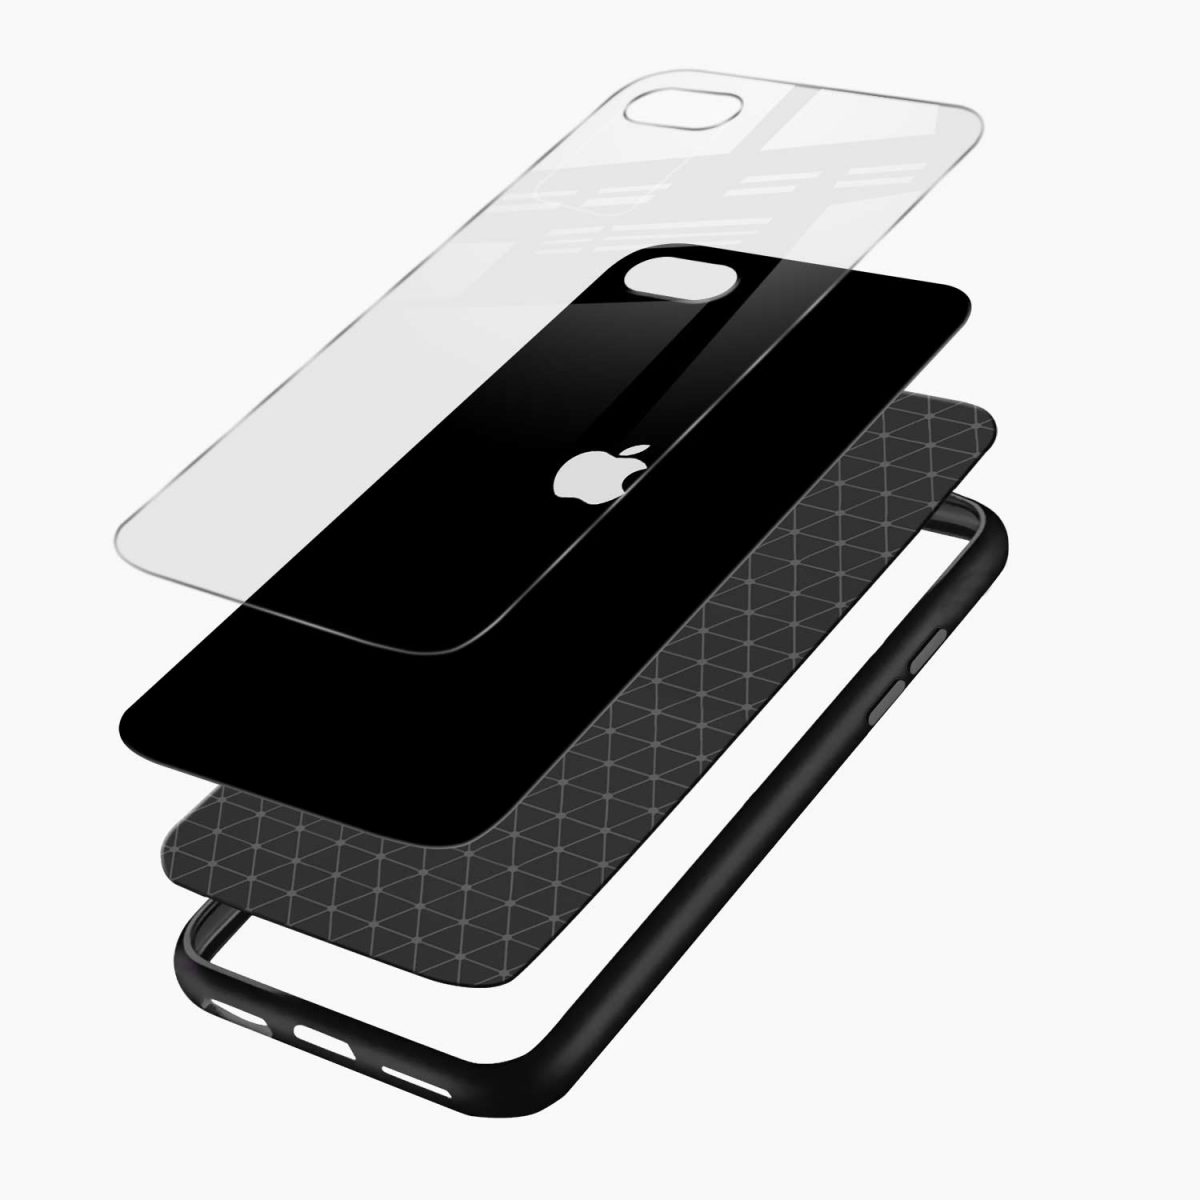 simply elegant layers view apple iphone 6 7 8 se back cover